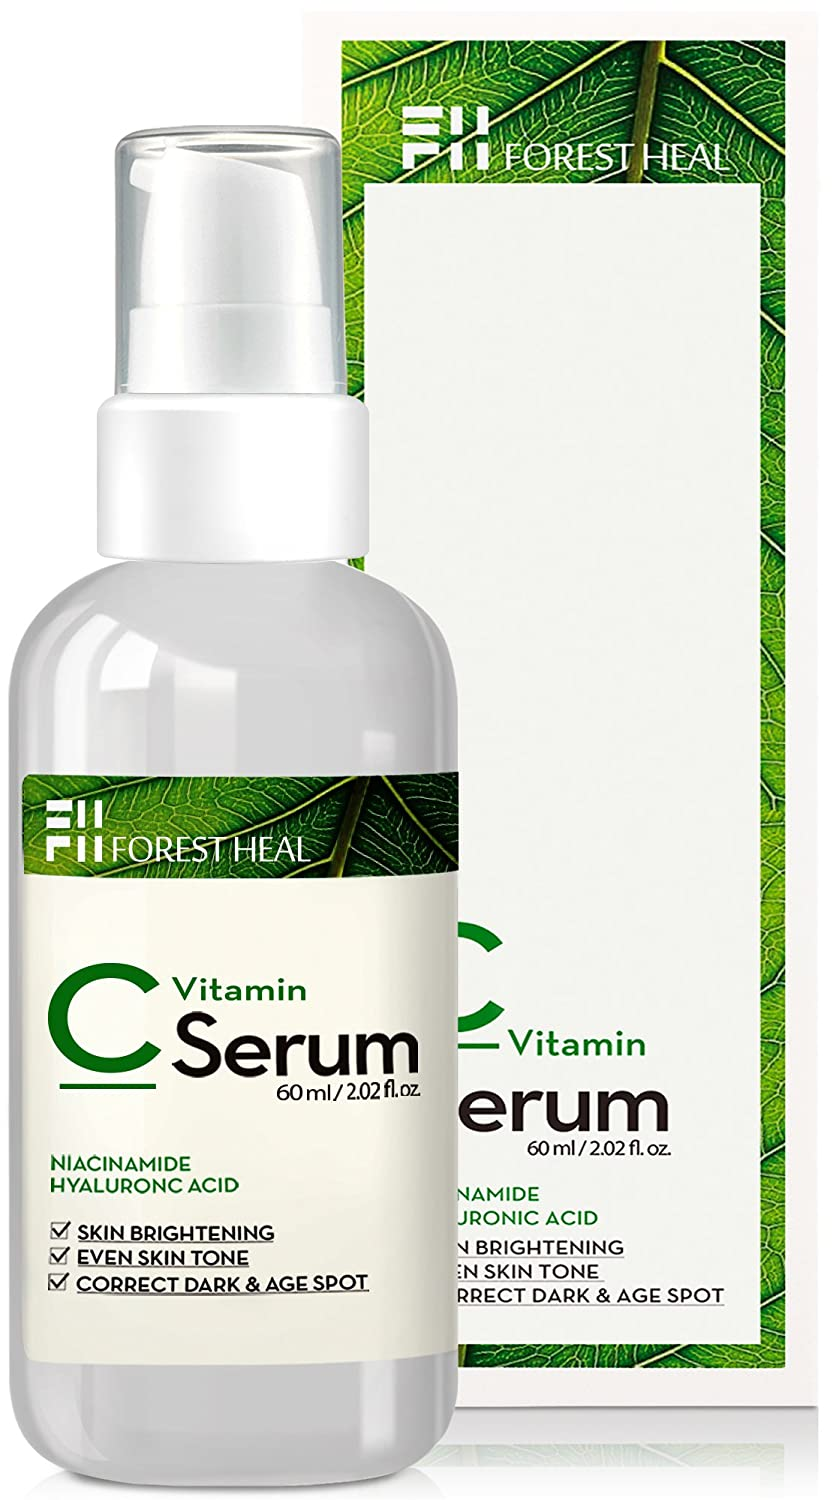 [Forest Heal] ​Anti Aging Vitamin C Serum for Face, Sun Damage Wrinkle Repair and Skin Tone Color Correct Facial Serum with ​Niacinamide,​ Hyaluronic Acid, Vitamin E B5 and D (60 ml/ 2.02 fl.oz.) ​ Hyaluronic Acid